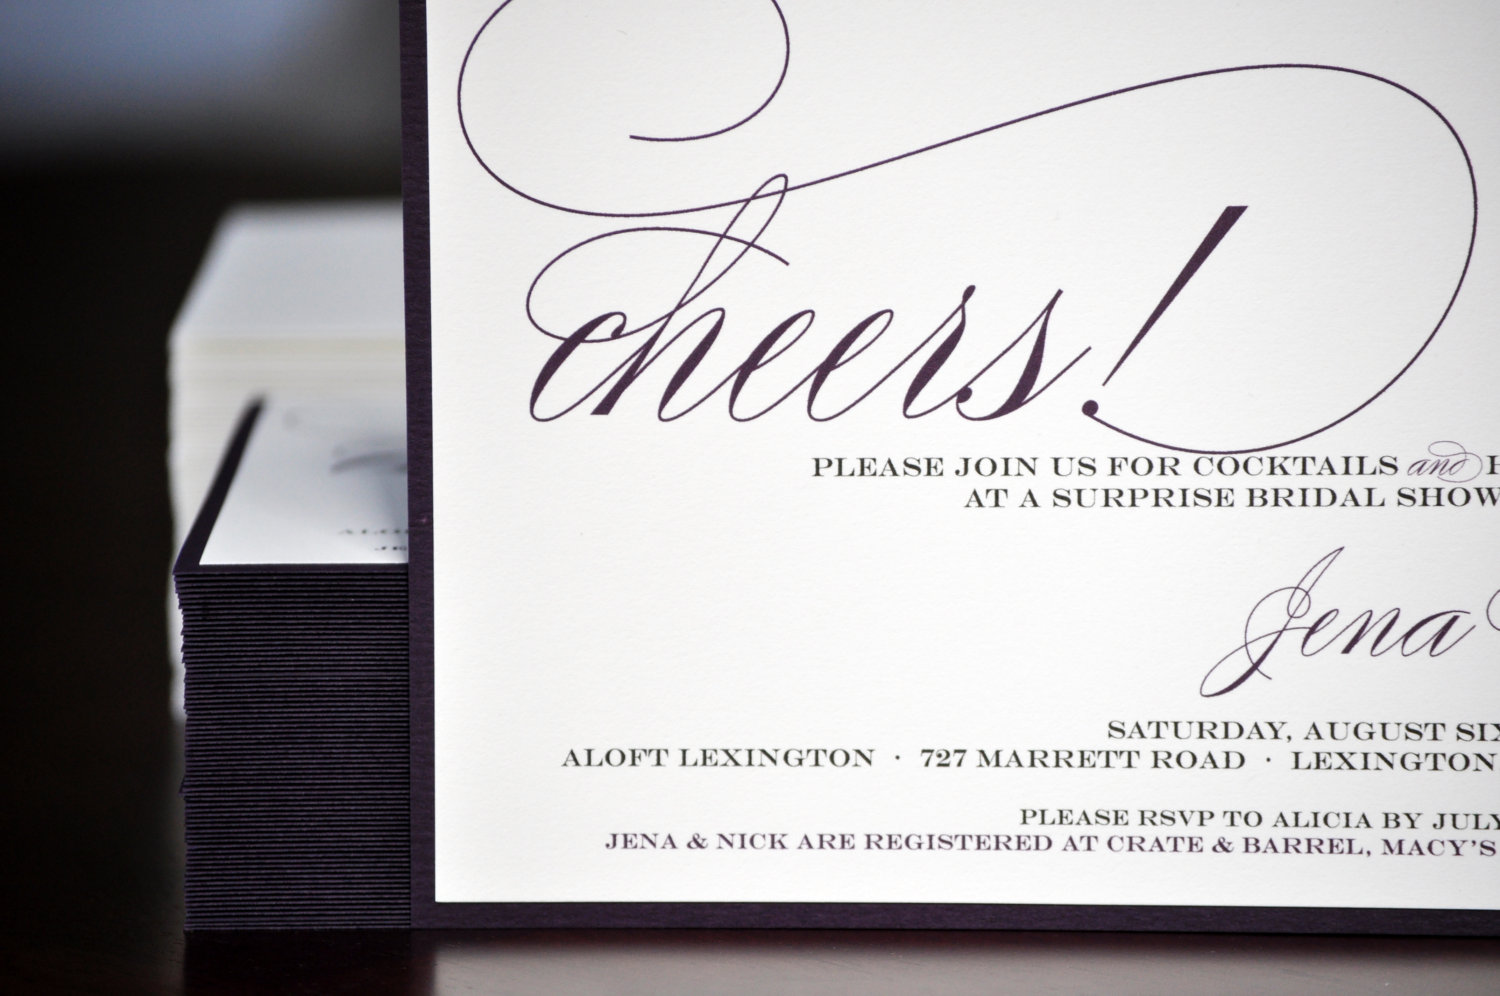 Casual Wedding Invitation Wording is amazing invitations design